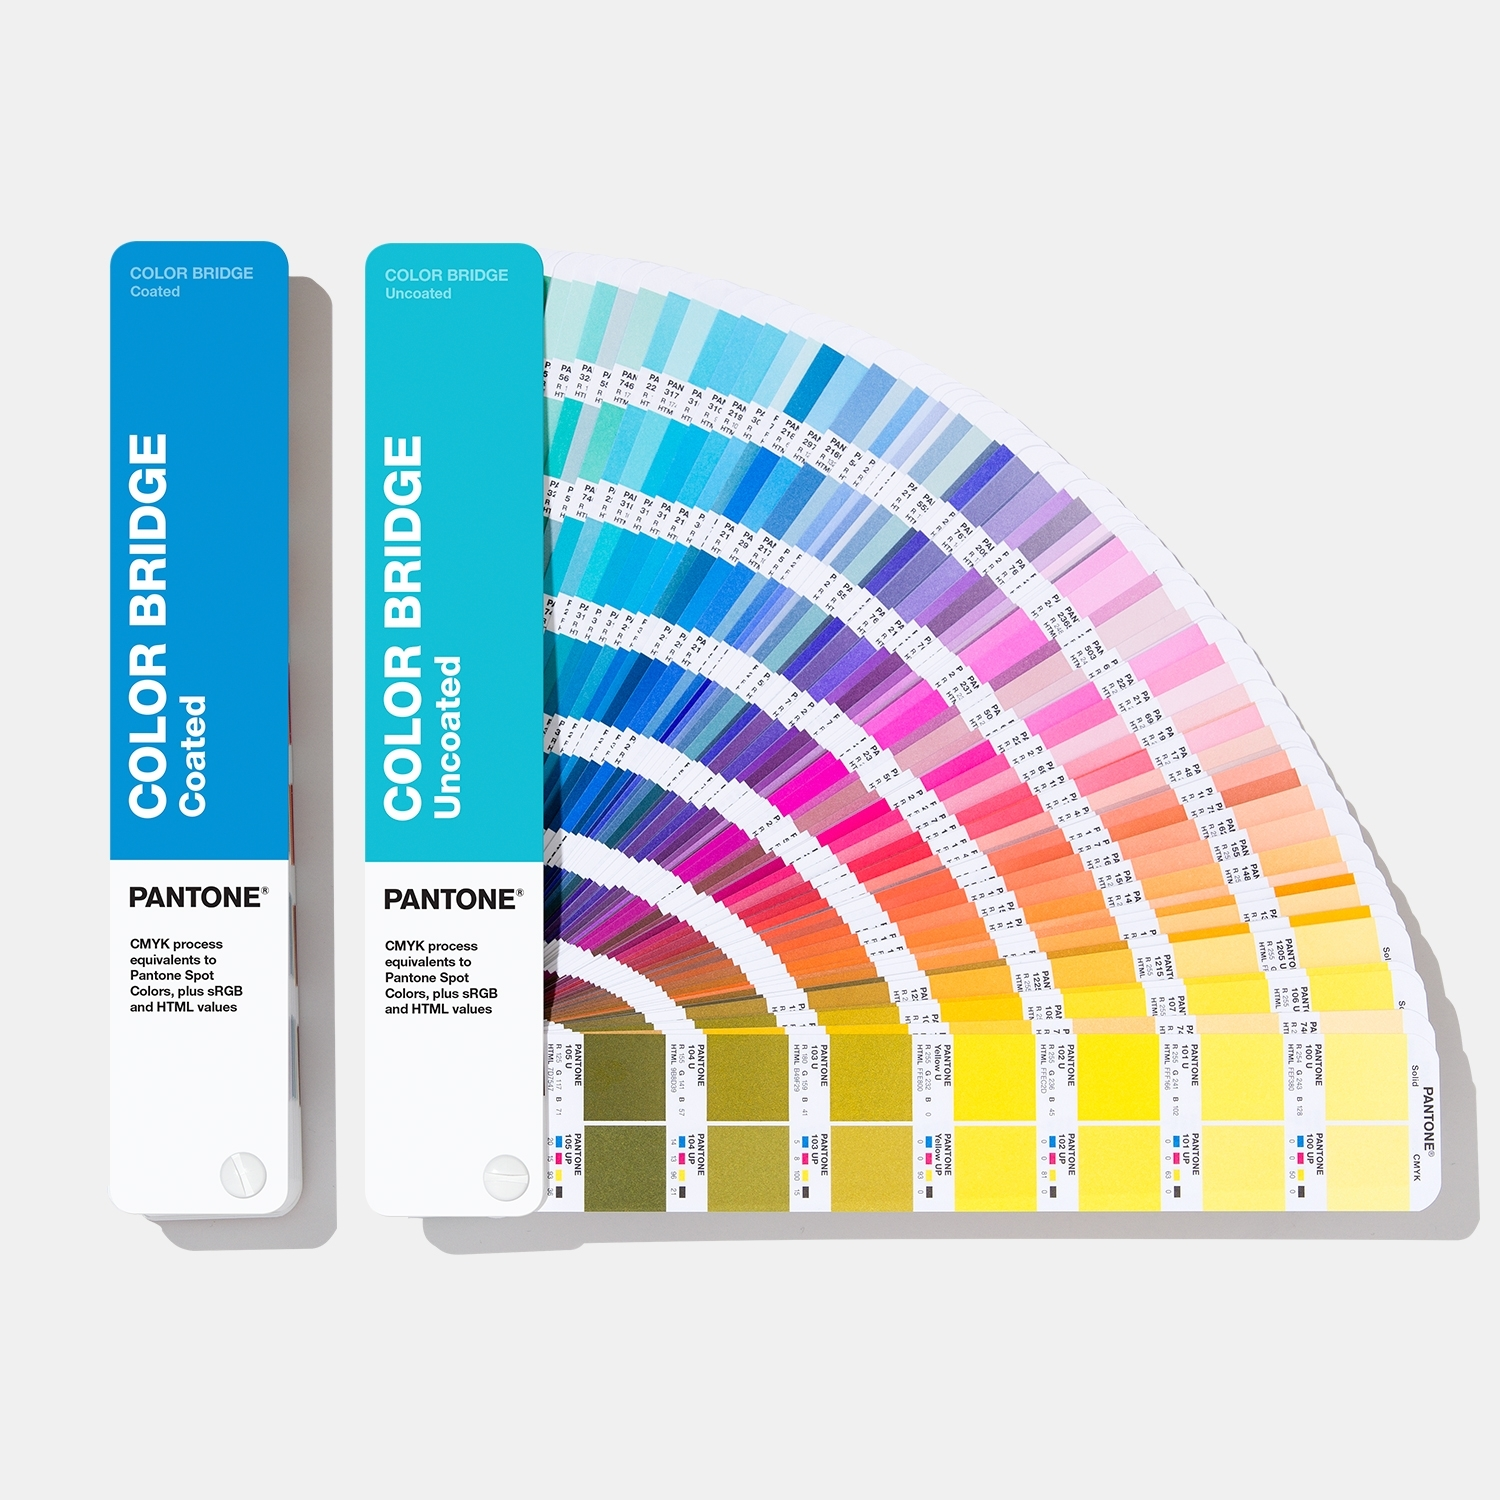 Pantone Color Bridge Guide | Coated Translate Pantone Colors into CMYK, HTML, RGB - View 3